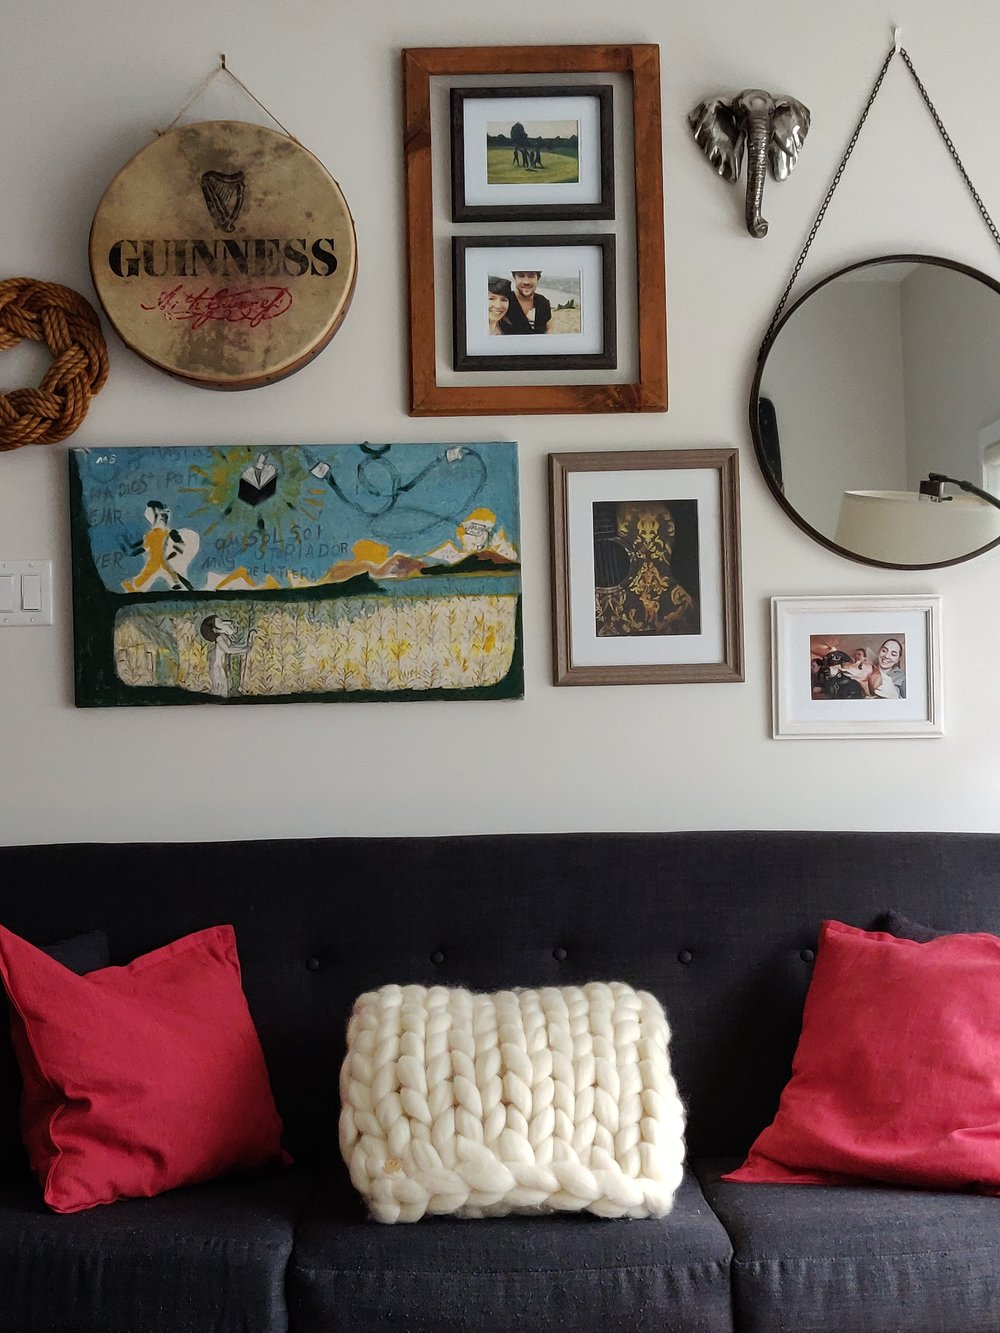 If neutral walls are a must, use your unique style to bring your personality to your home by hanging art and nostalgic items.